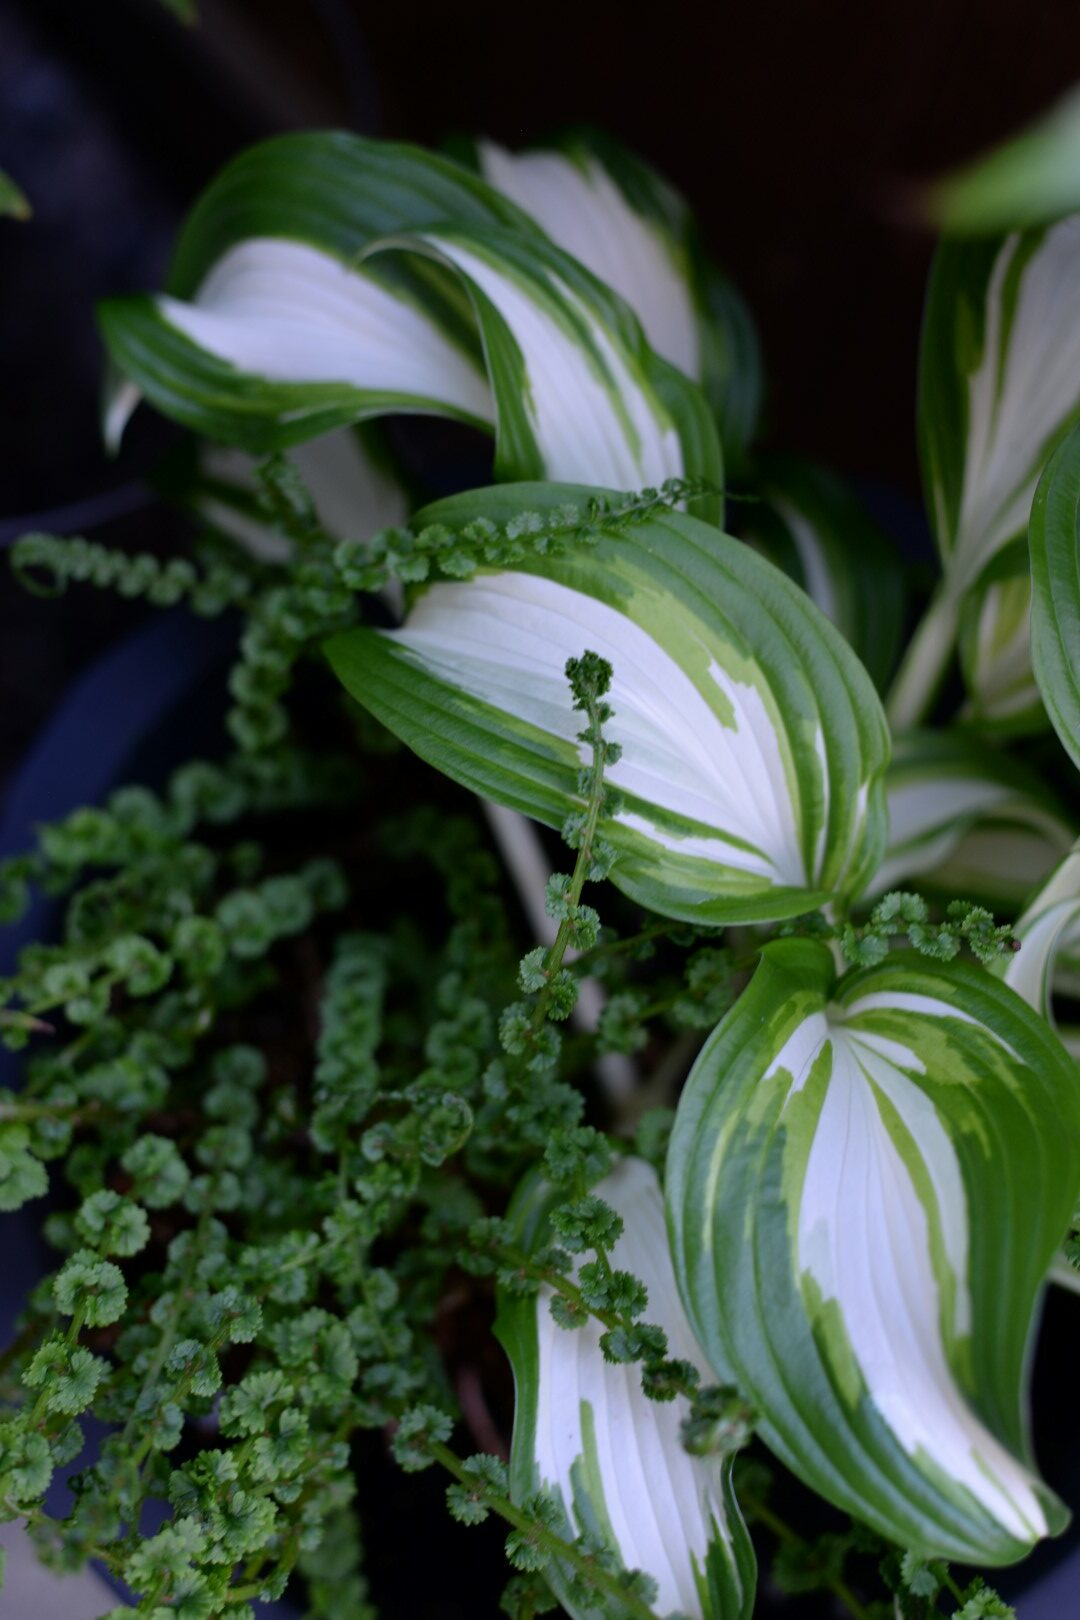 variegated hosta with a fern